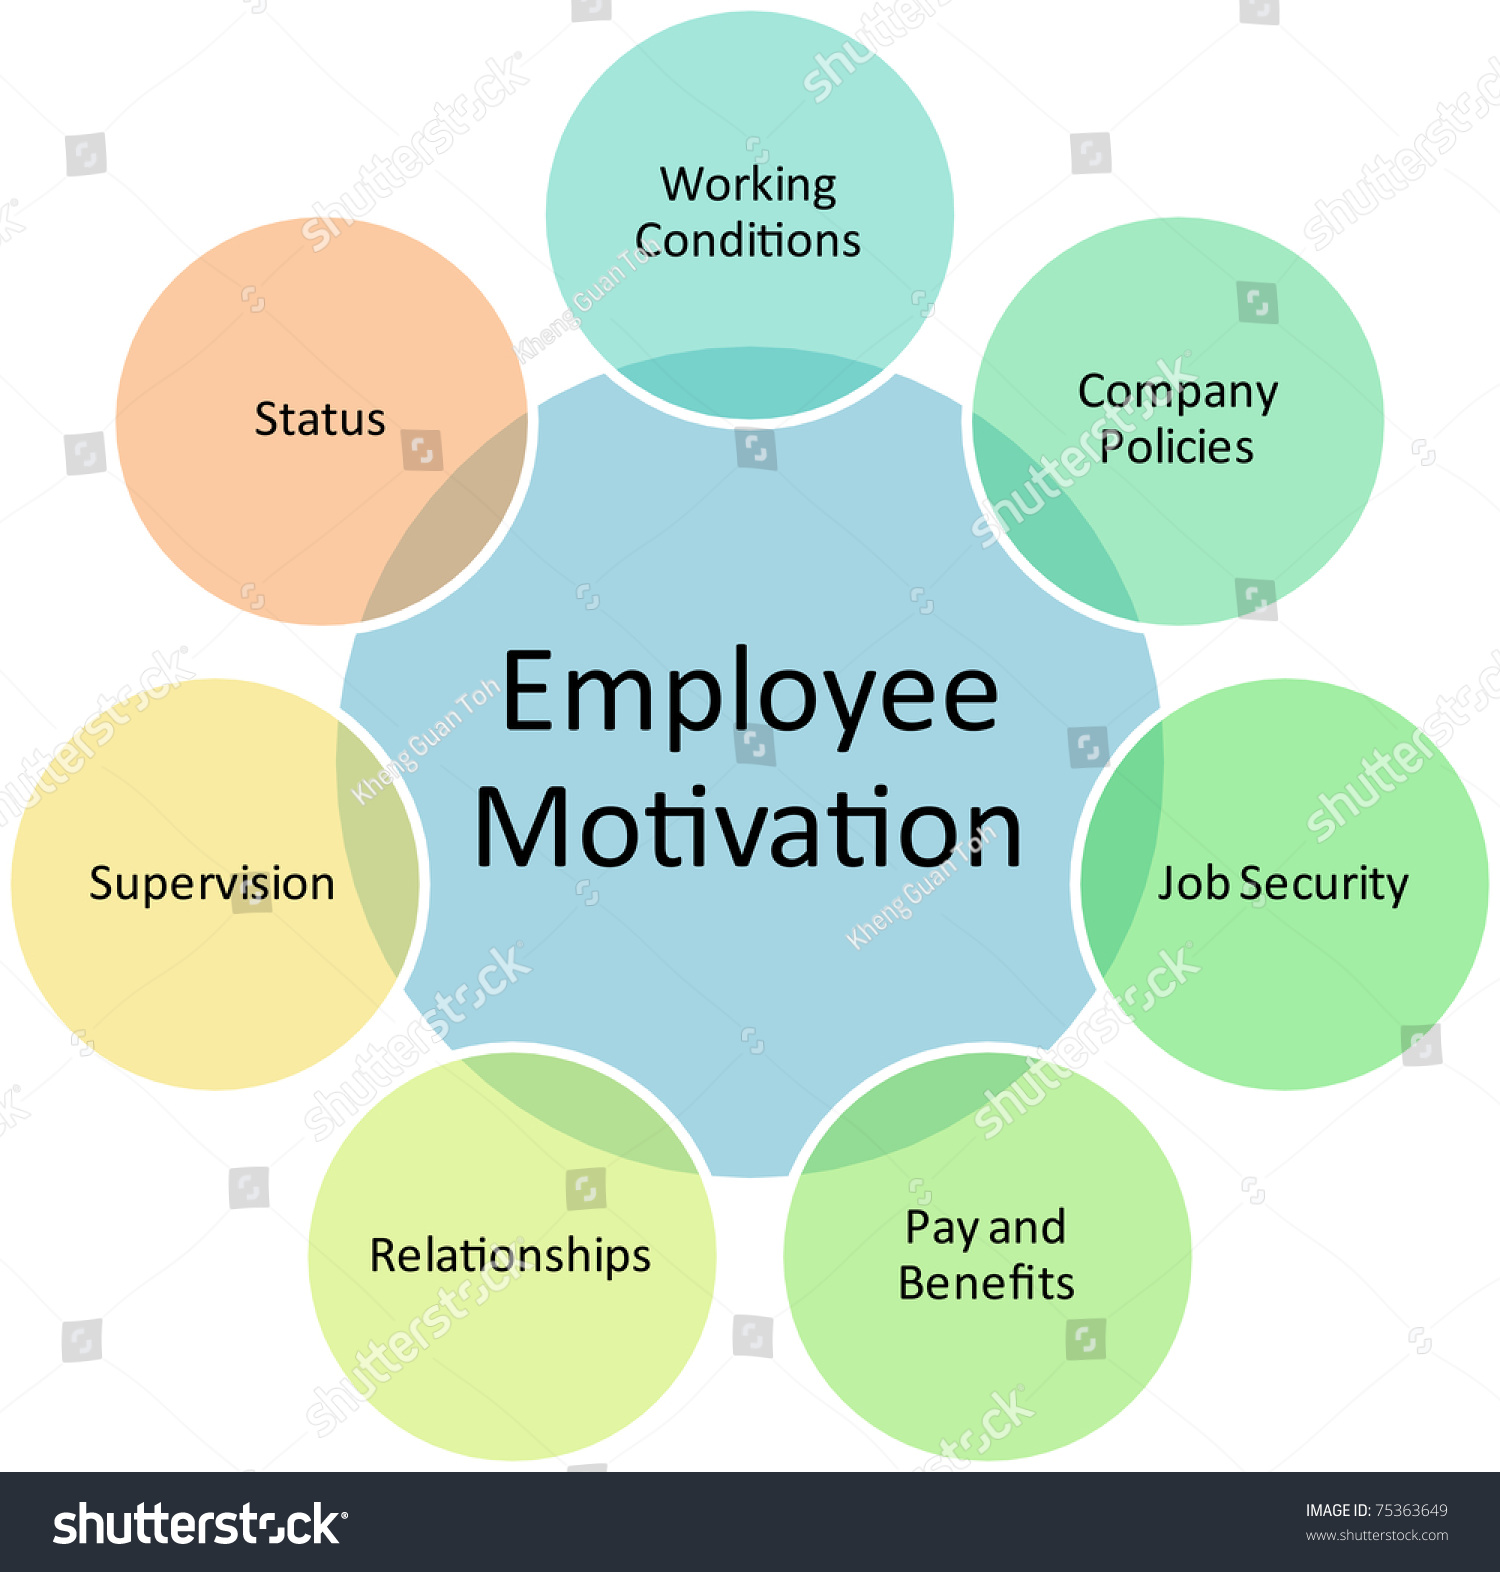 motivating employee research paper Bachelor thesis: employee motivation and performance 42 motivating employees intrinsically to 13 research questions 1 what is motivation and how are its.